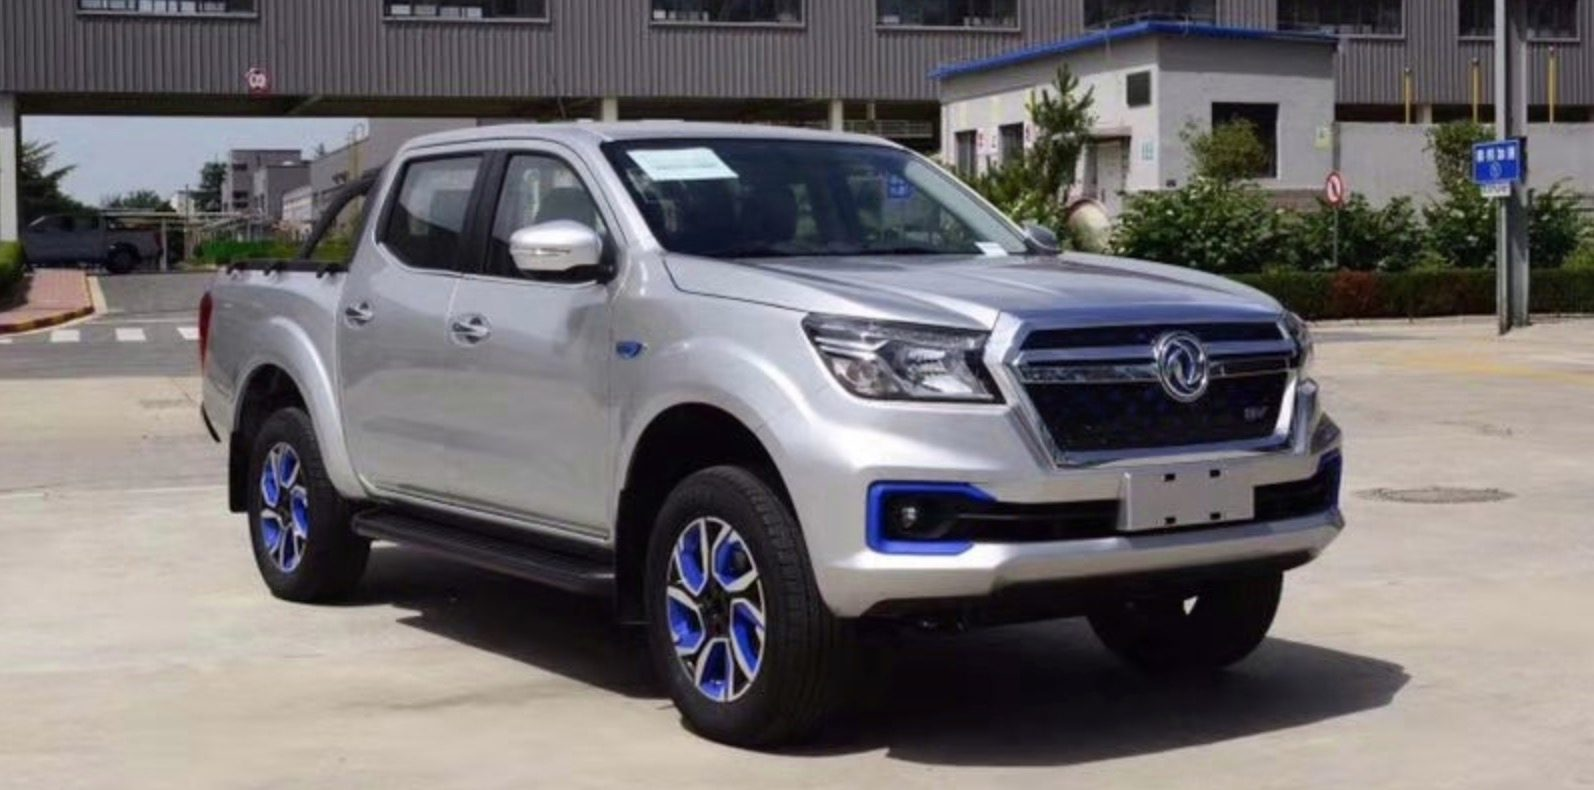 400 km Nissan Dongfeng Electric Pickup Truck Revealed: Video